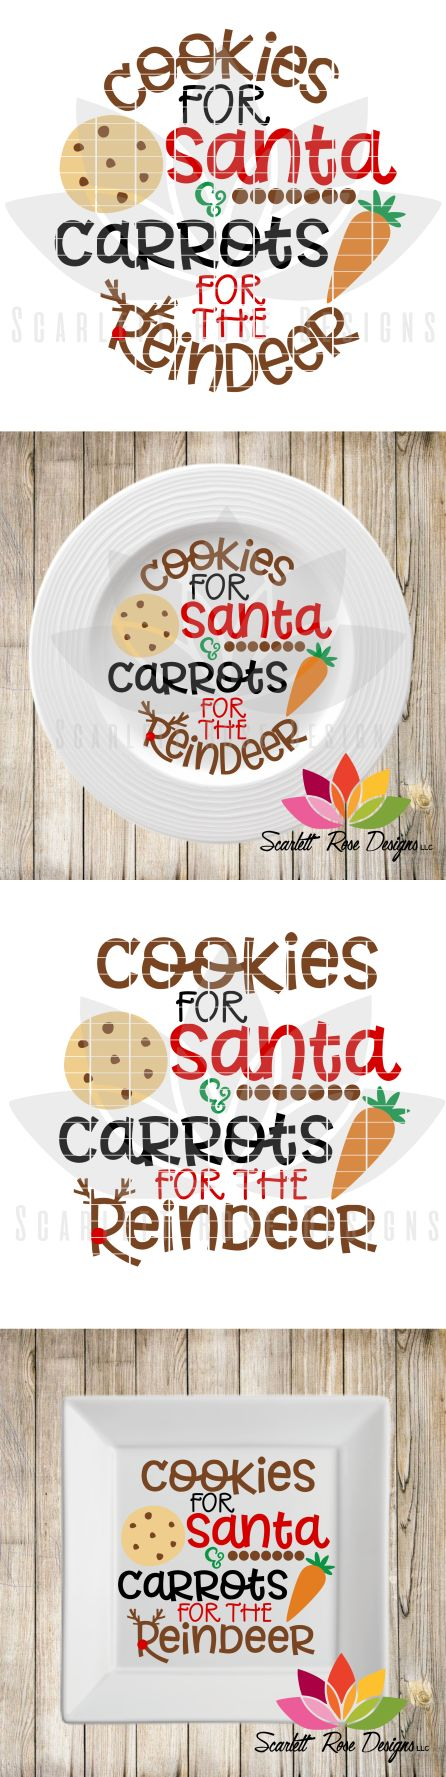 Santa Cookie Plate SVG cut file in circle and square templates